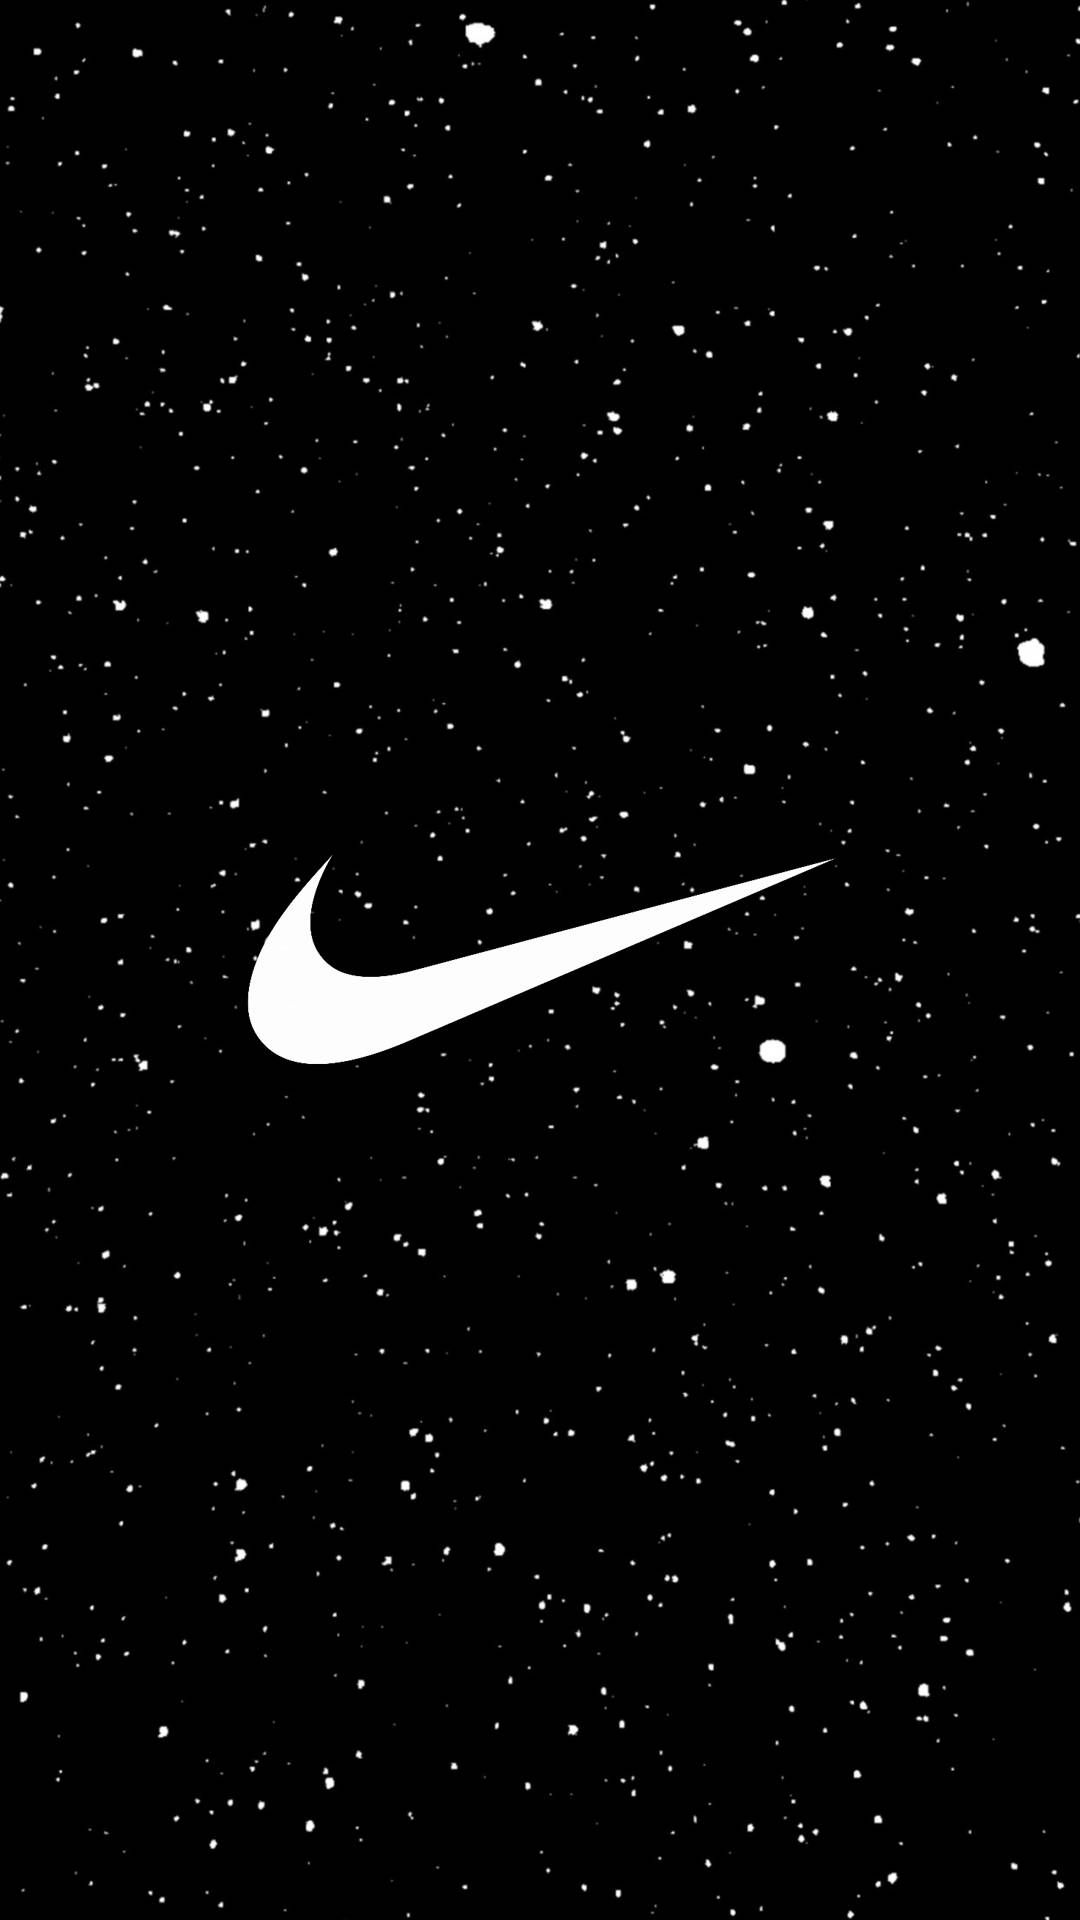 Nike Swoosh Iphone Wallpaper Nike Wallpaper Iphone Nike Wallpaper Cool Nike Wallpapers